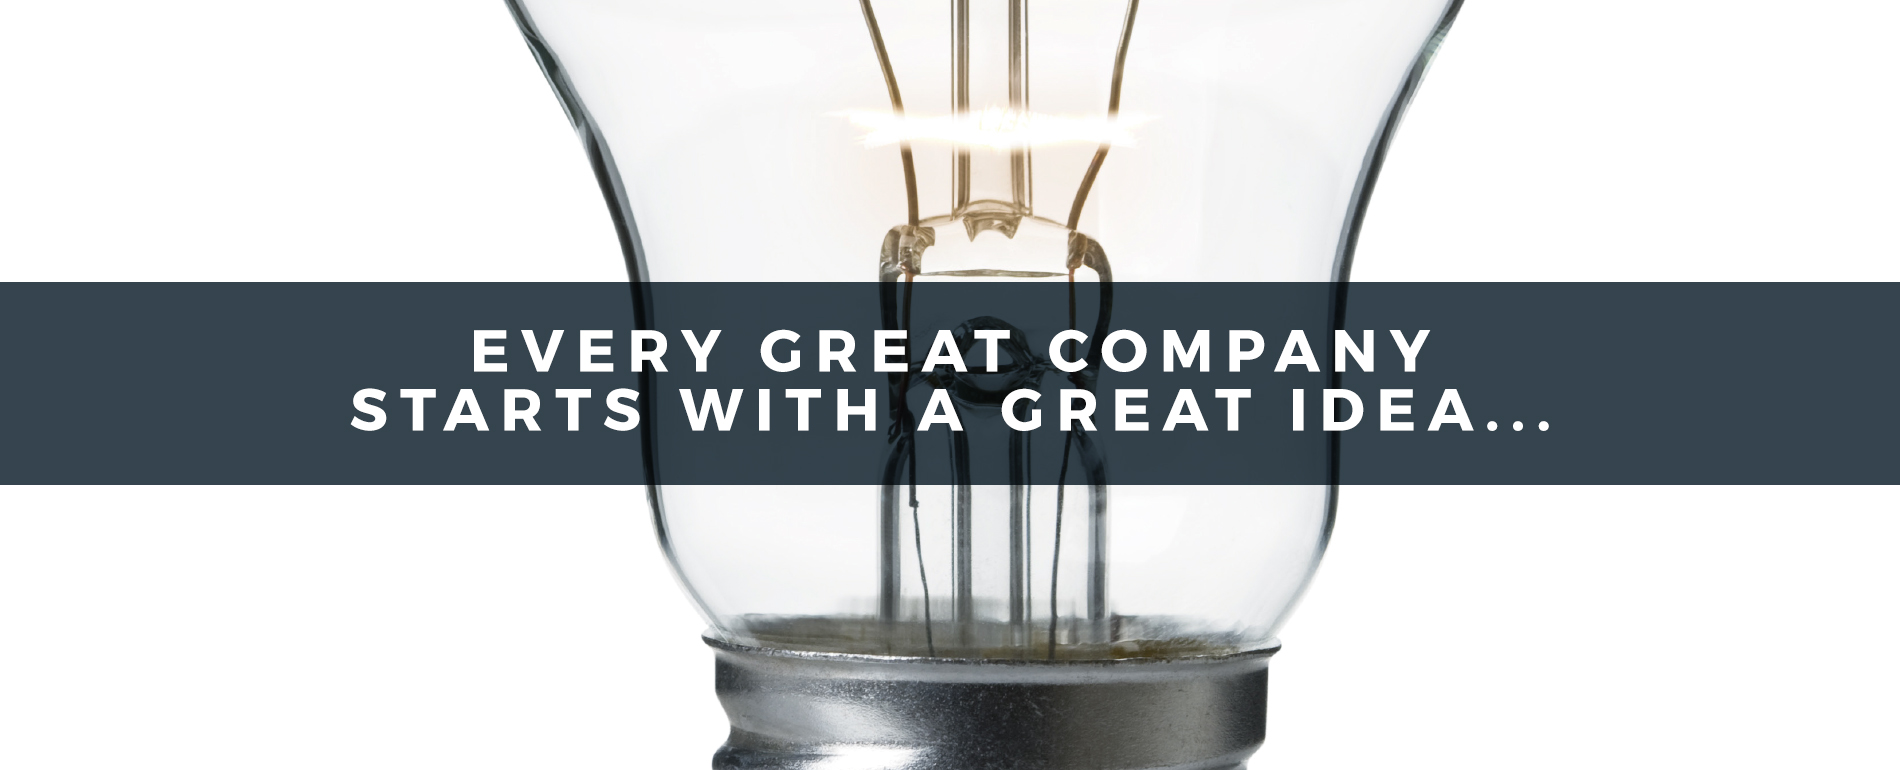 Every Great Company